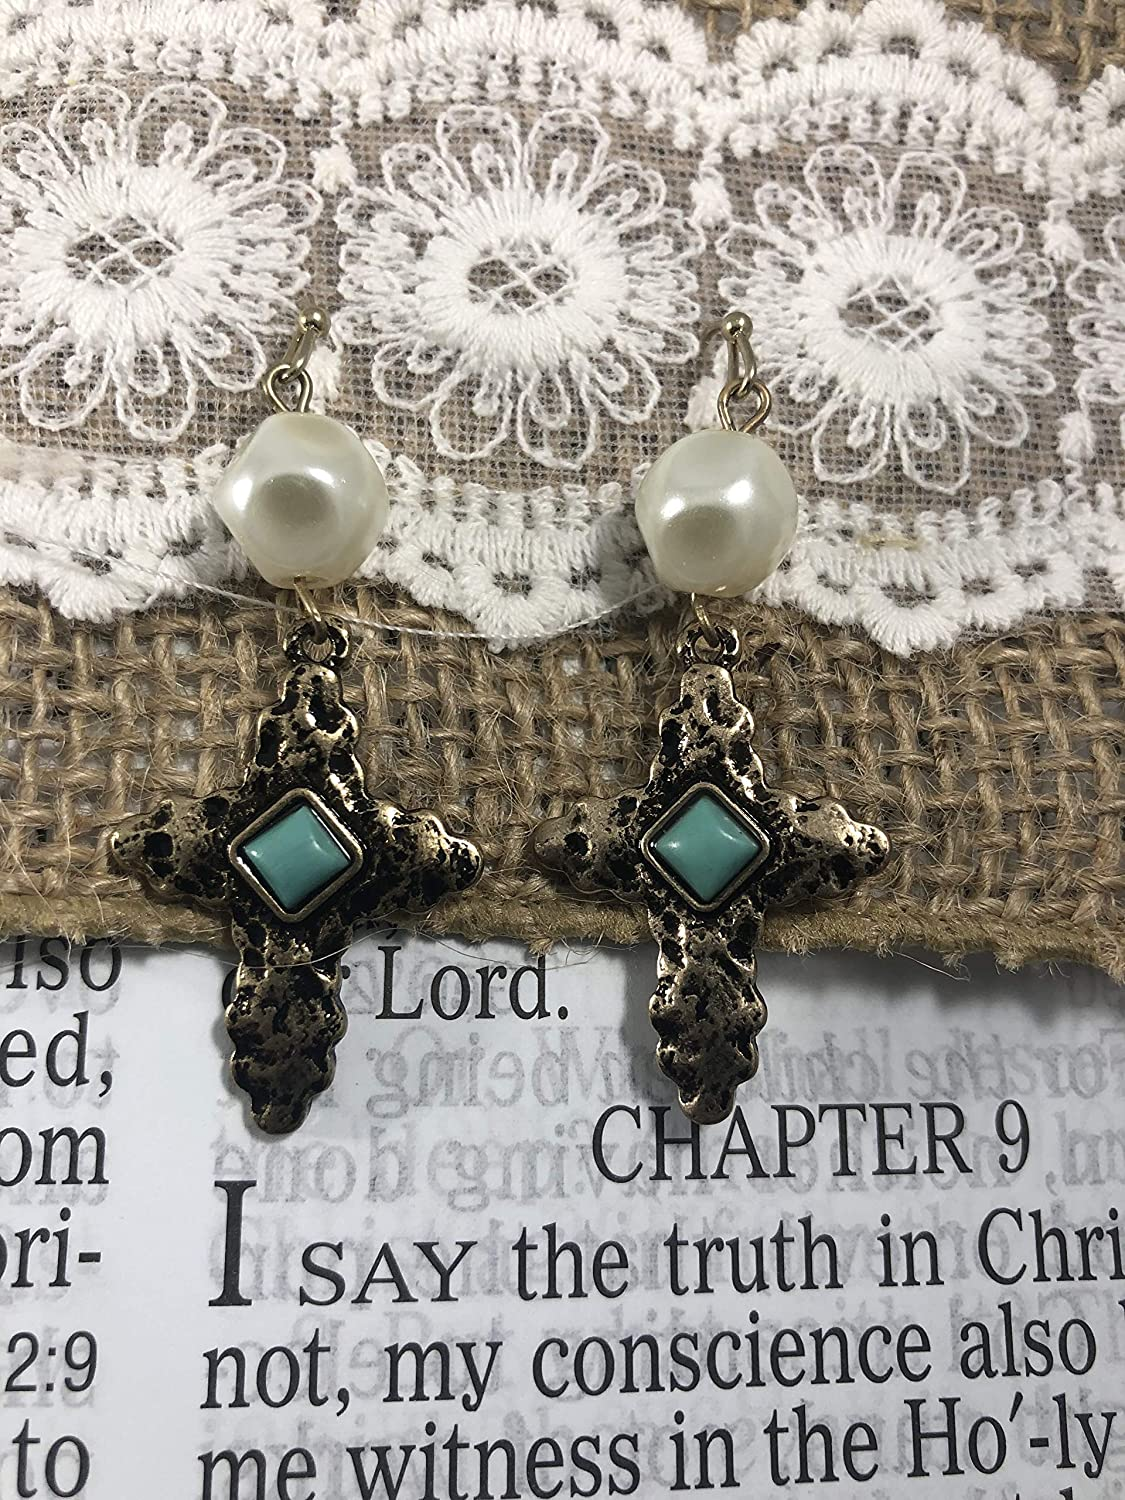 Hammered Gold Cross Earrings with Turquoise Center Stone and Pearl Accent NoraJae Gems Cross Earrings